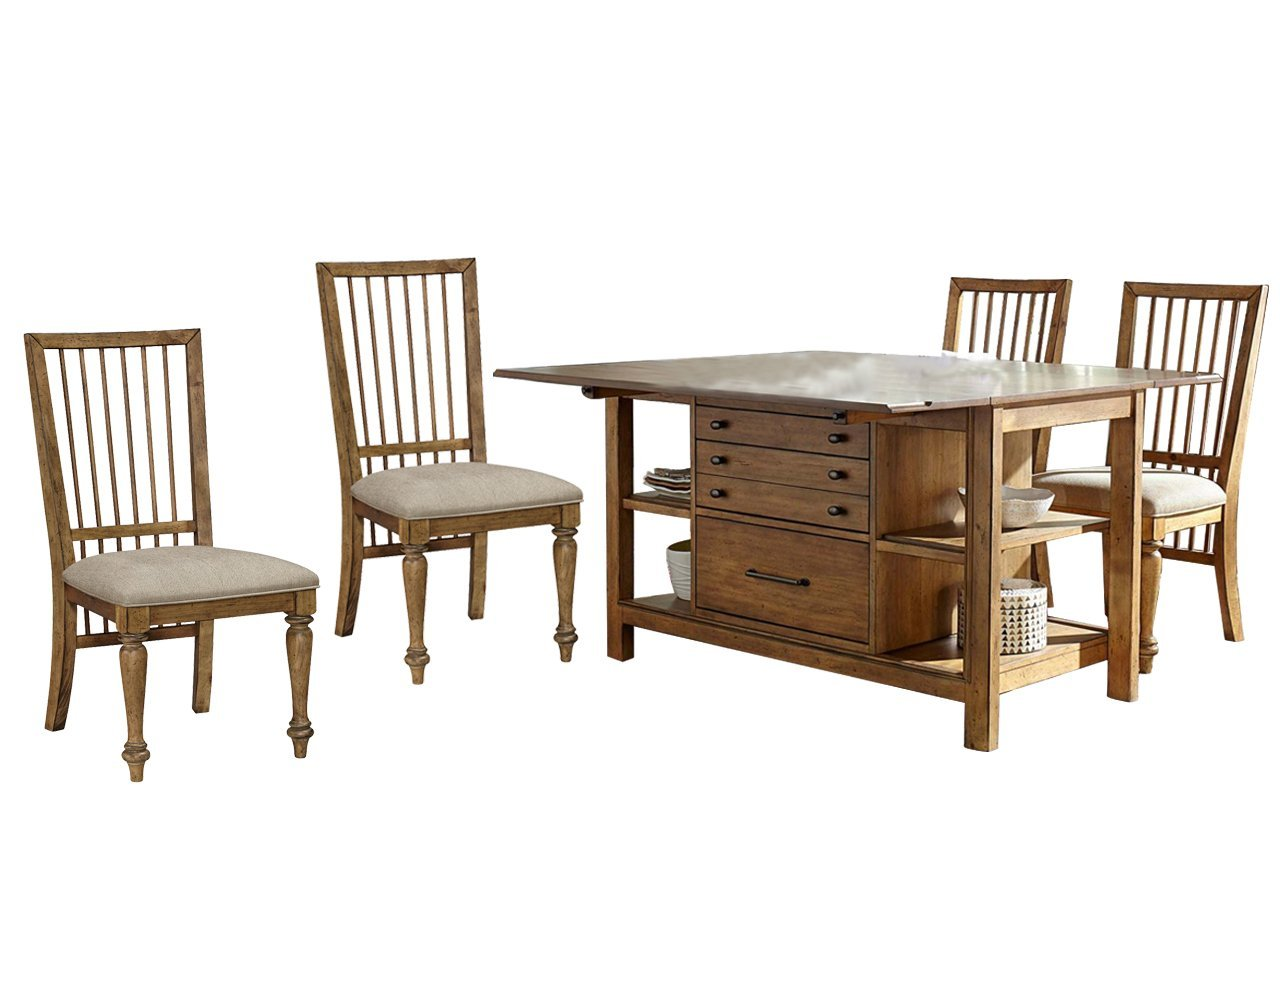 Cheap Broyhill Dining Room Set Find Broyhill Dining Room Set Deals On Line At Alibaba Com